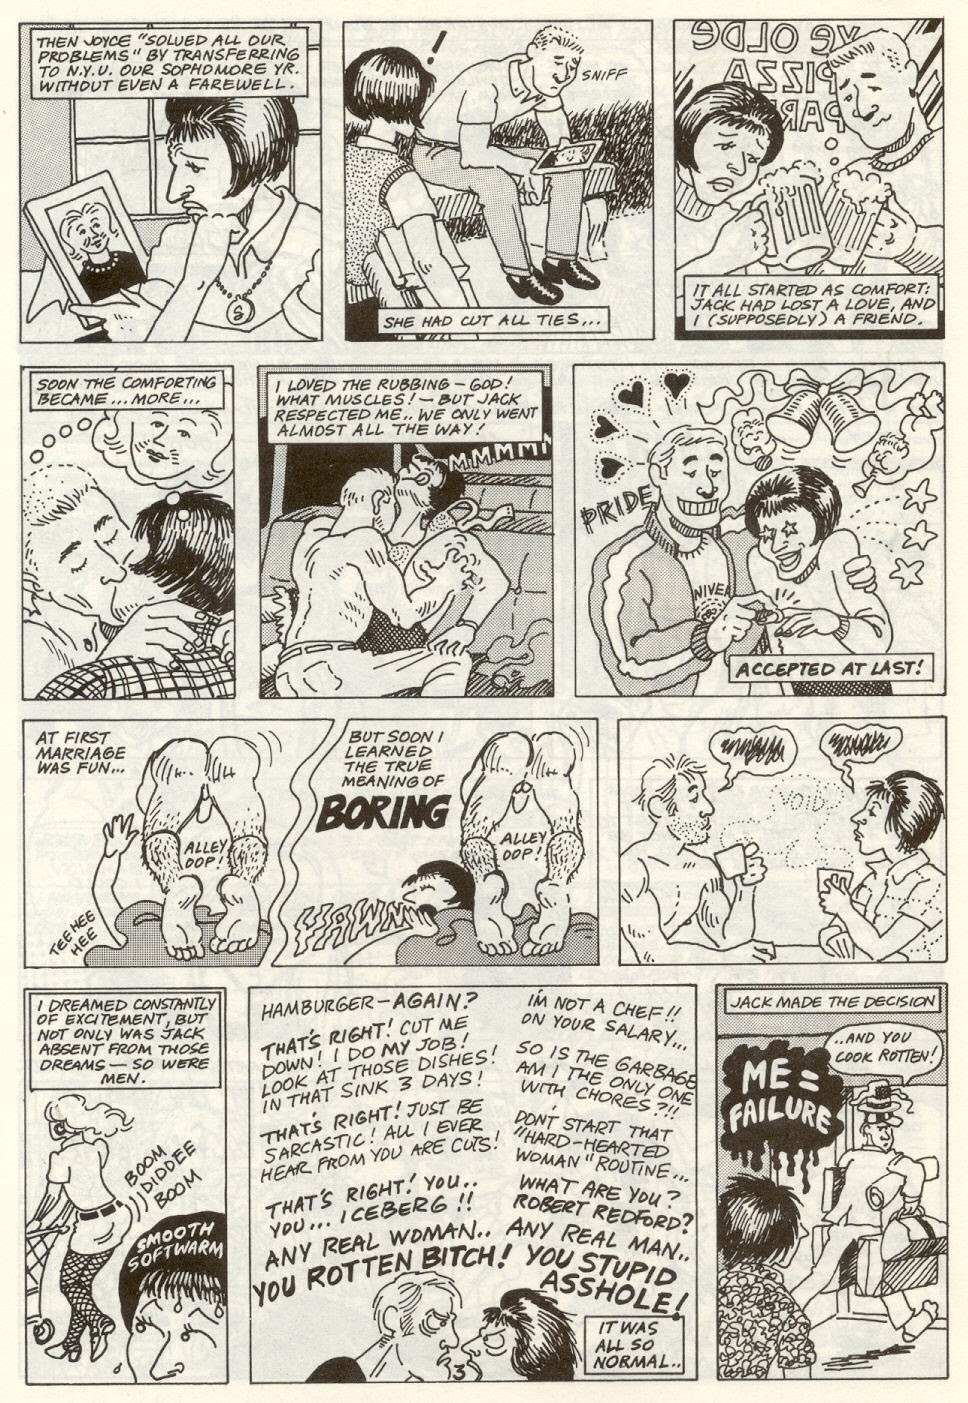 Gay Comix (Gay Comics) issue 1 - Page 6